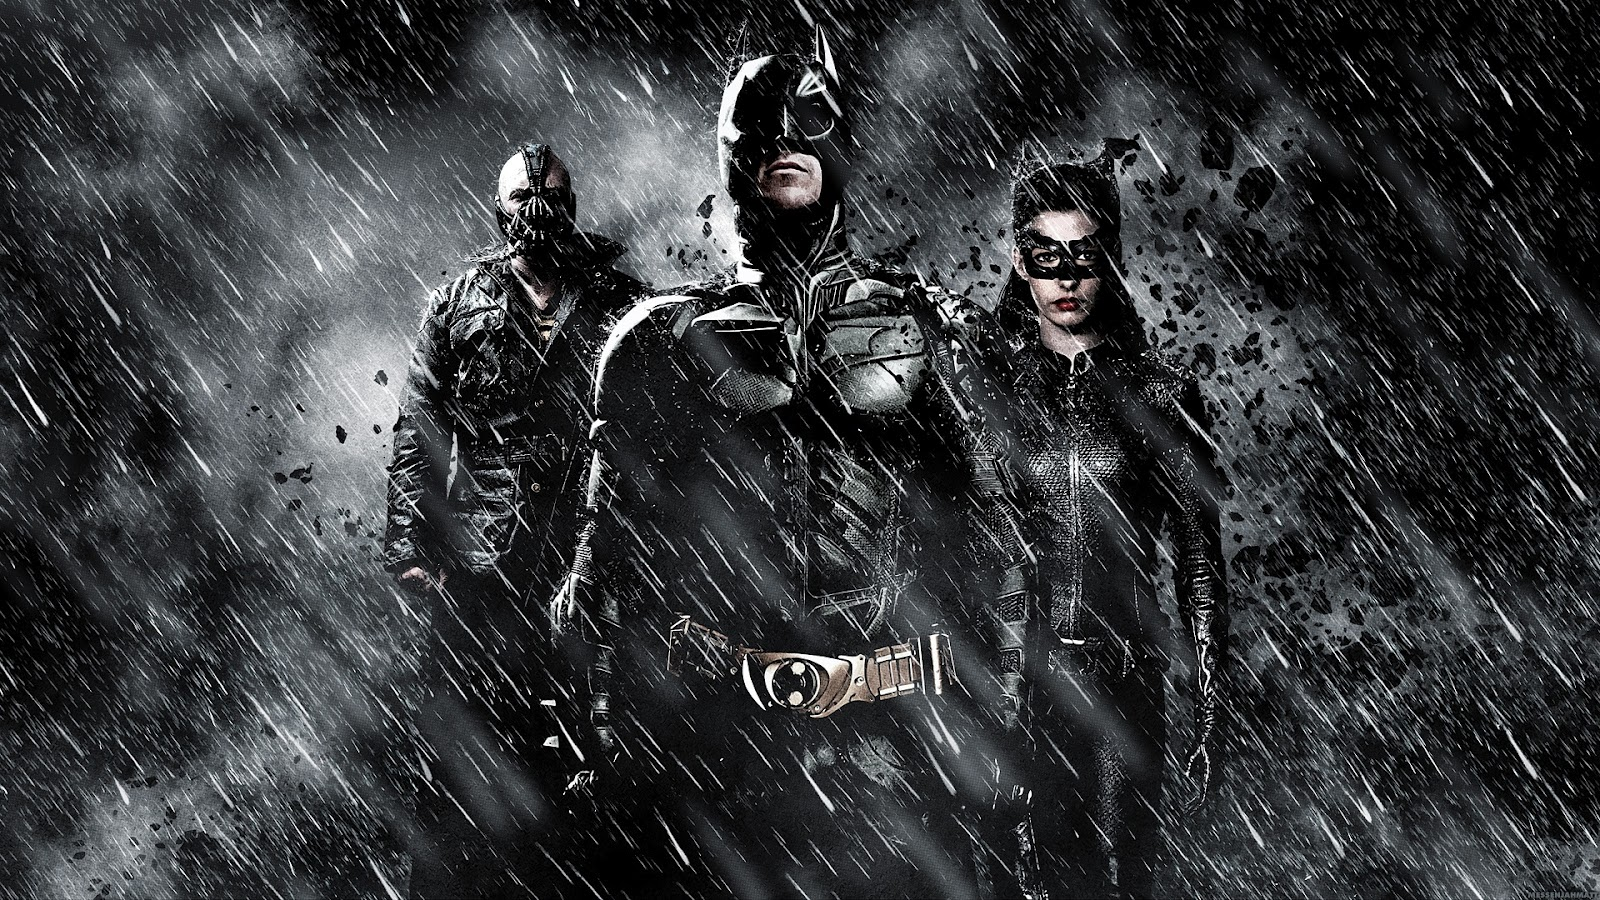 http://3.bp.blogspot.com/-OJgh4n3pIlg/T9oPTl586-I/AAAAAAAAfNw/4vT0-05WREY/s1600/Batman-The-Dark-Knight-Rises_Wallpapers-HD.jpg